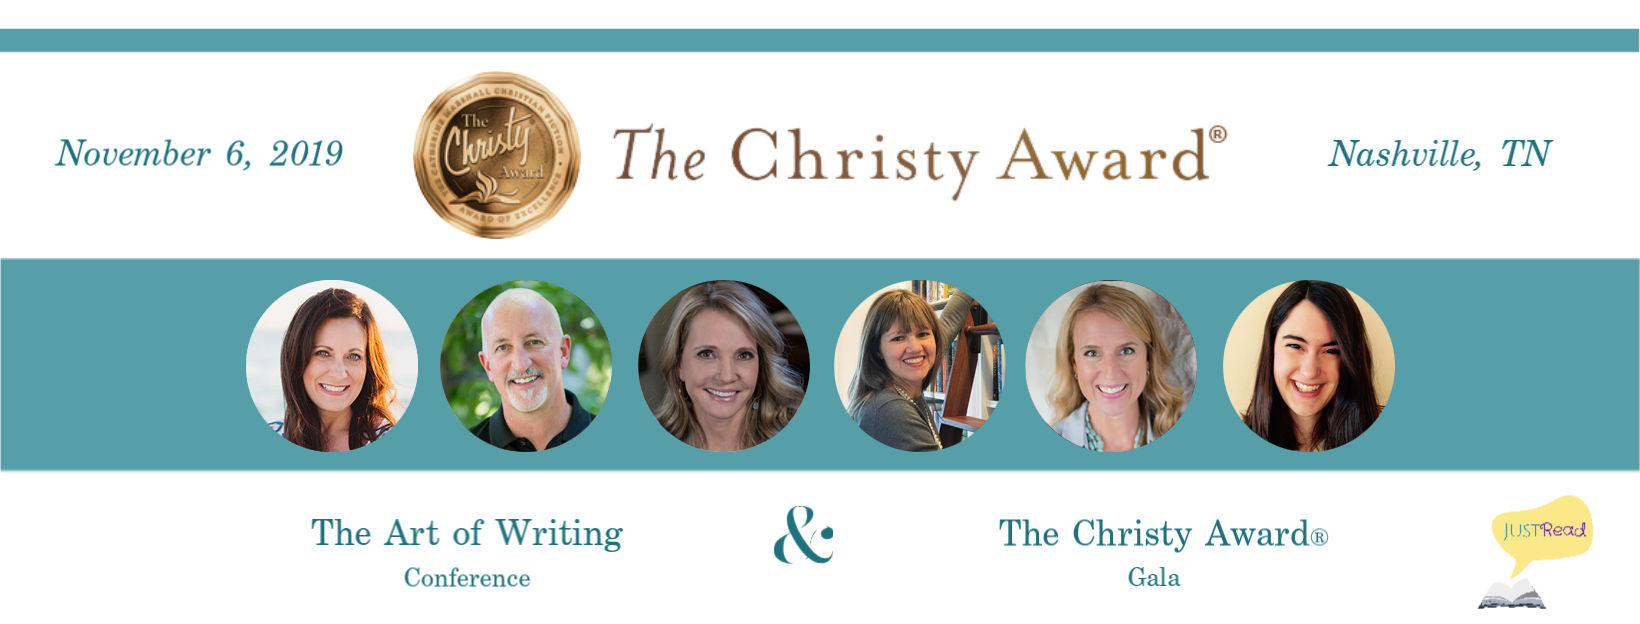 Welcome to The Art of Writing Conference & The Christy Award® Gala 2019 Giveaway